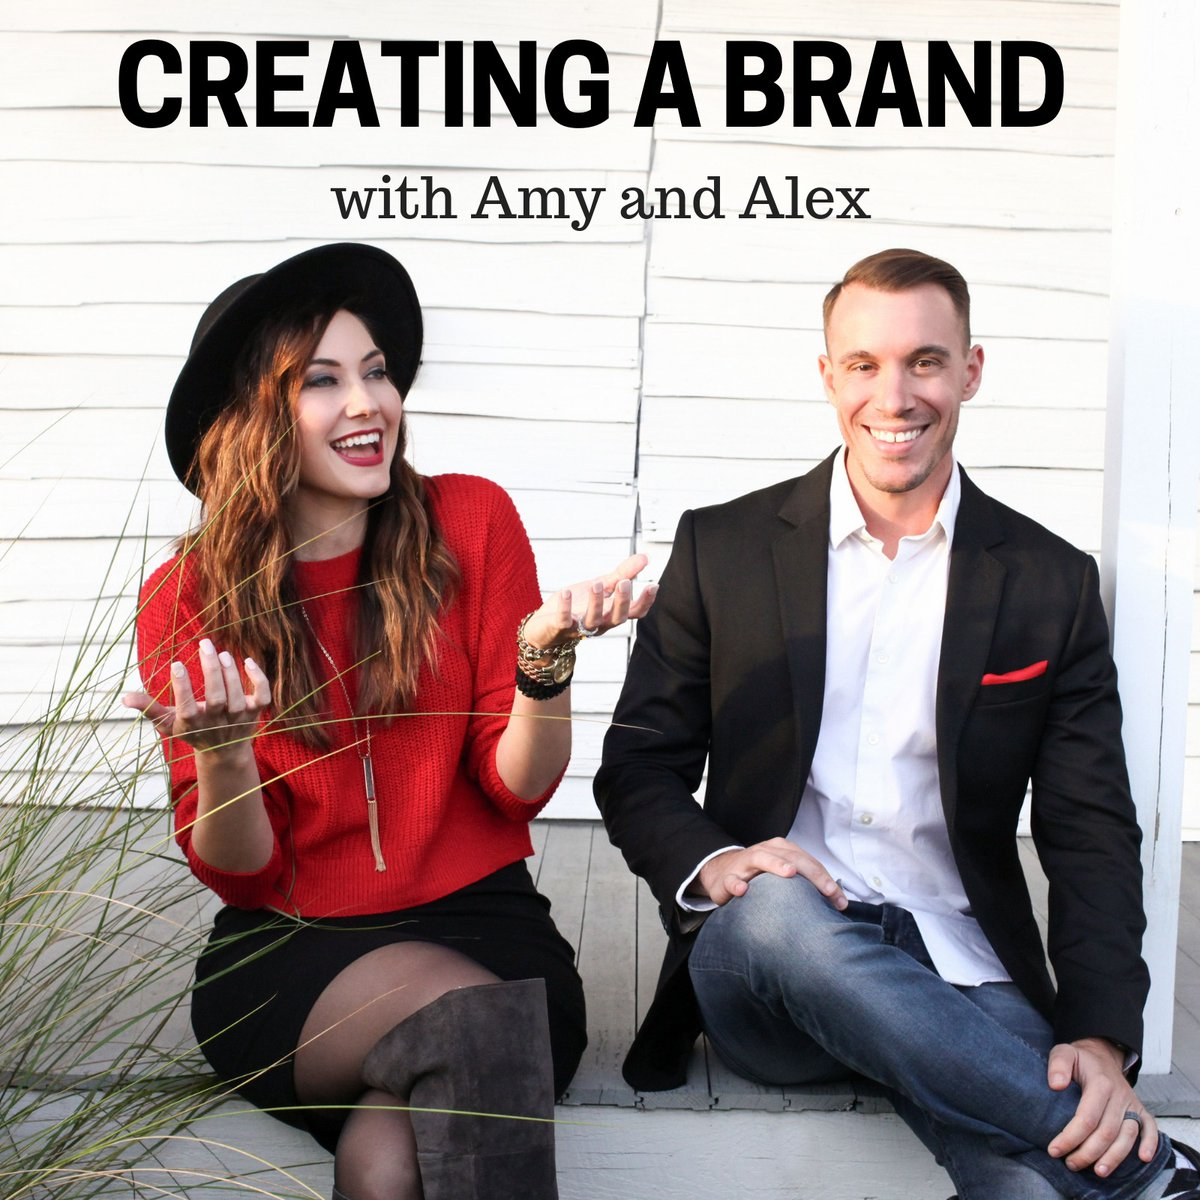 Amy and Alex with Creating a Brand